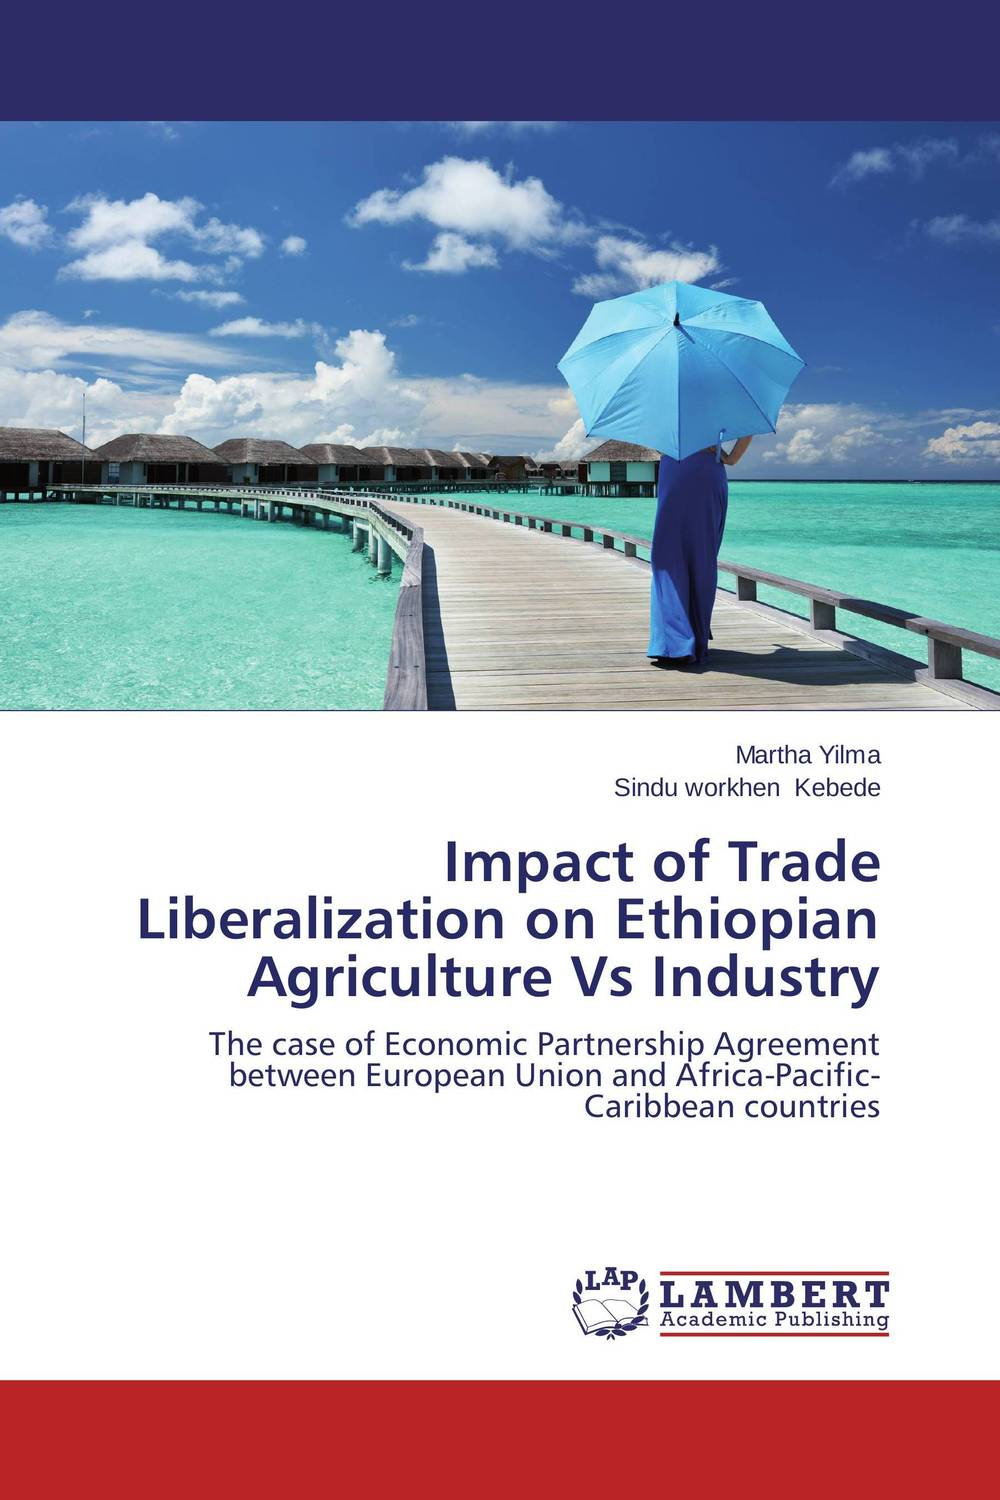 Impact of Trade Liberalization on Ethiopian Agriculture Vs Industry